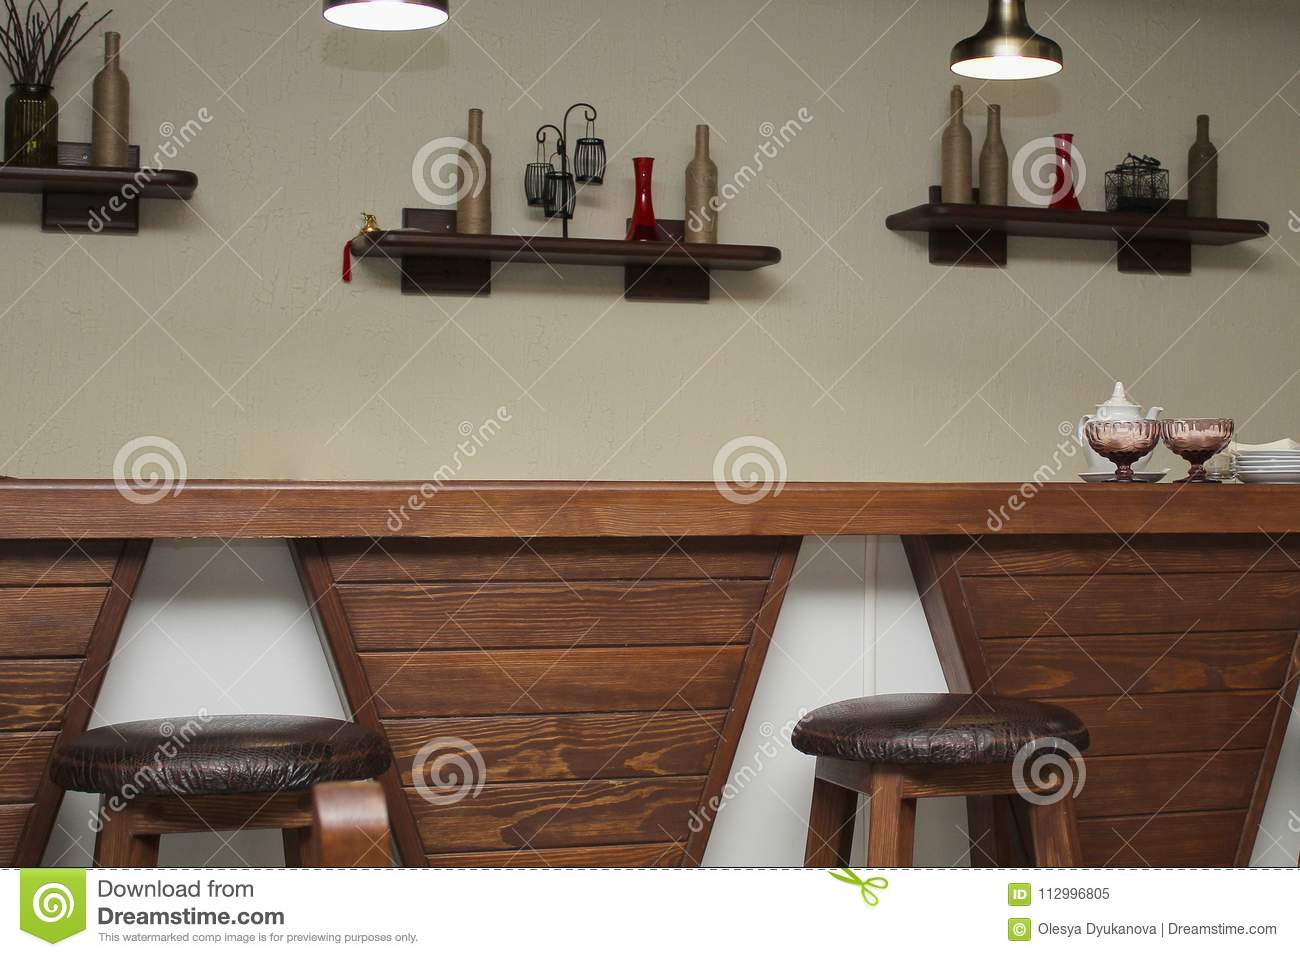 Cafe Interior With Wooden Bar Counter And Chairs Stock Image Image Of Morning Bowl 112996805